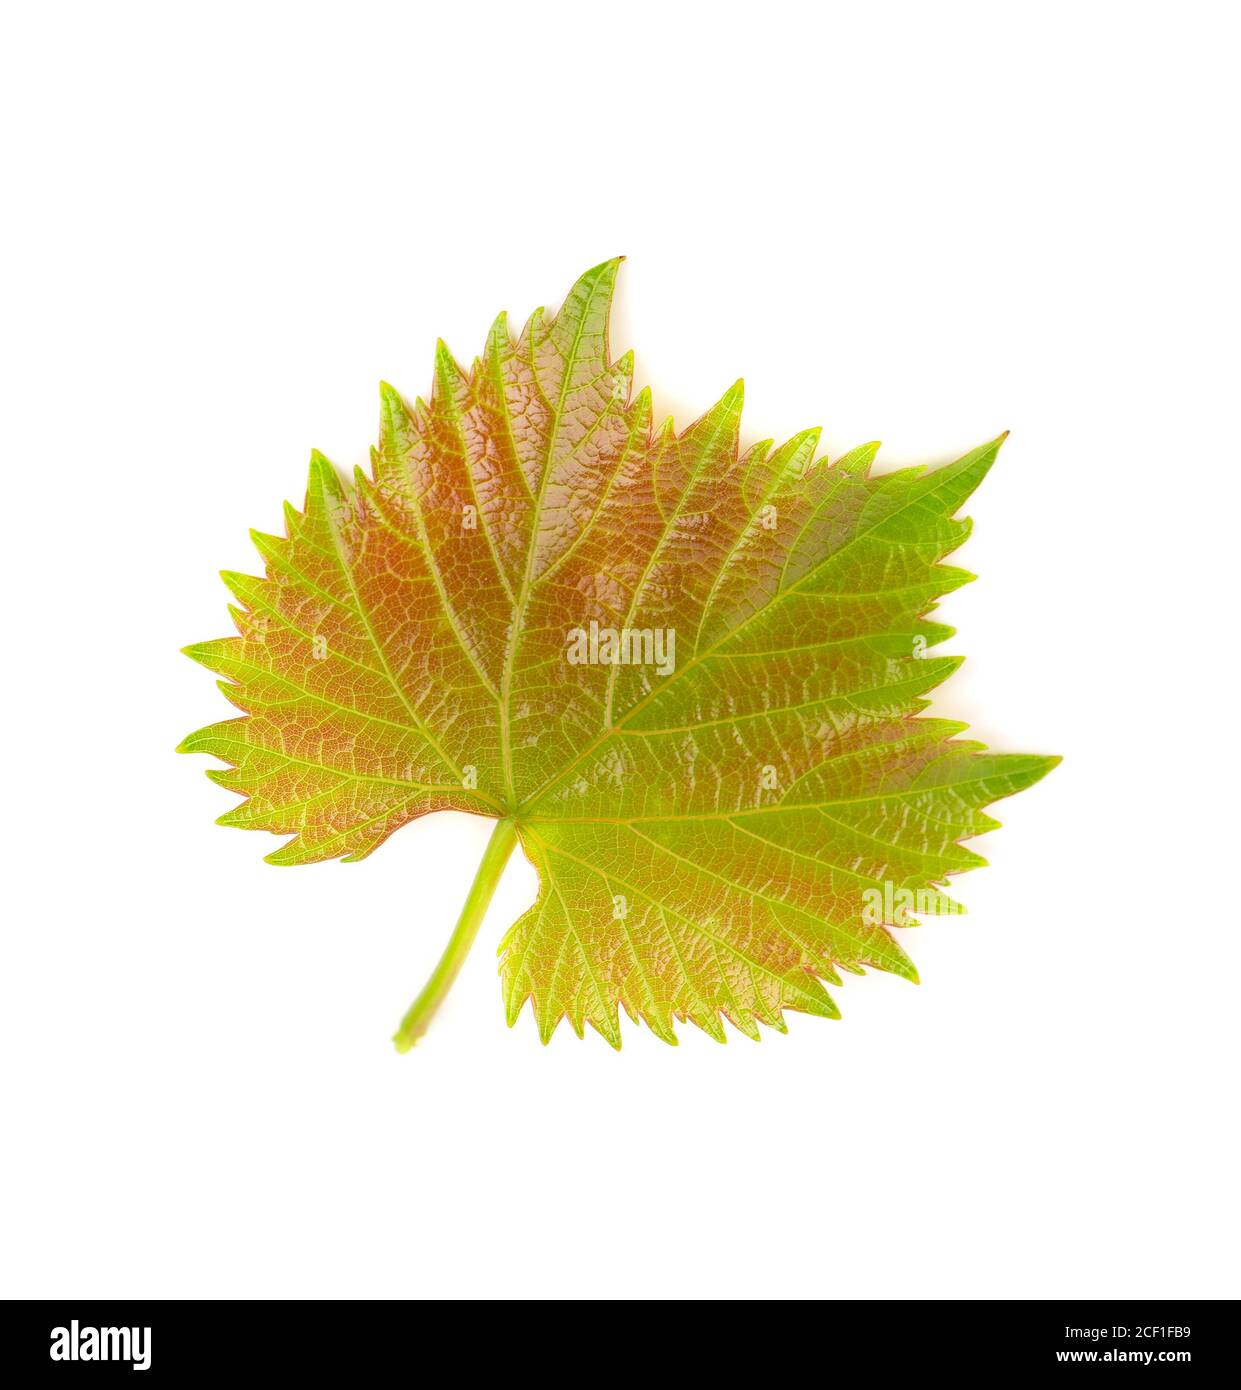 Green Grape Leaves Isolated On White Background Spring With Leaves Of Grape Vine Stock Photo Alamy